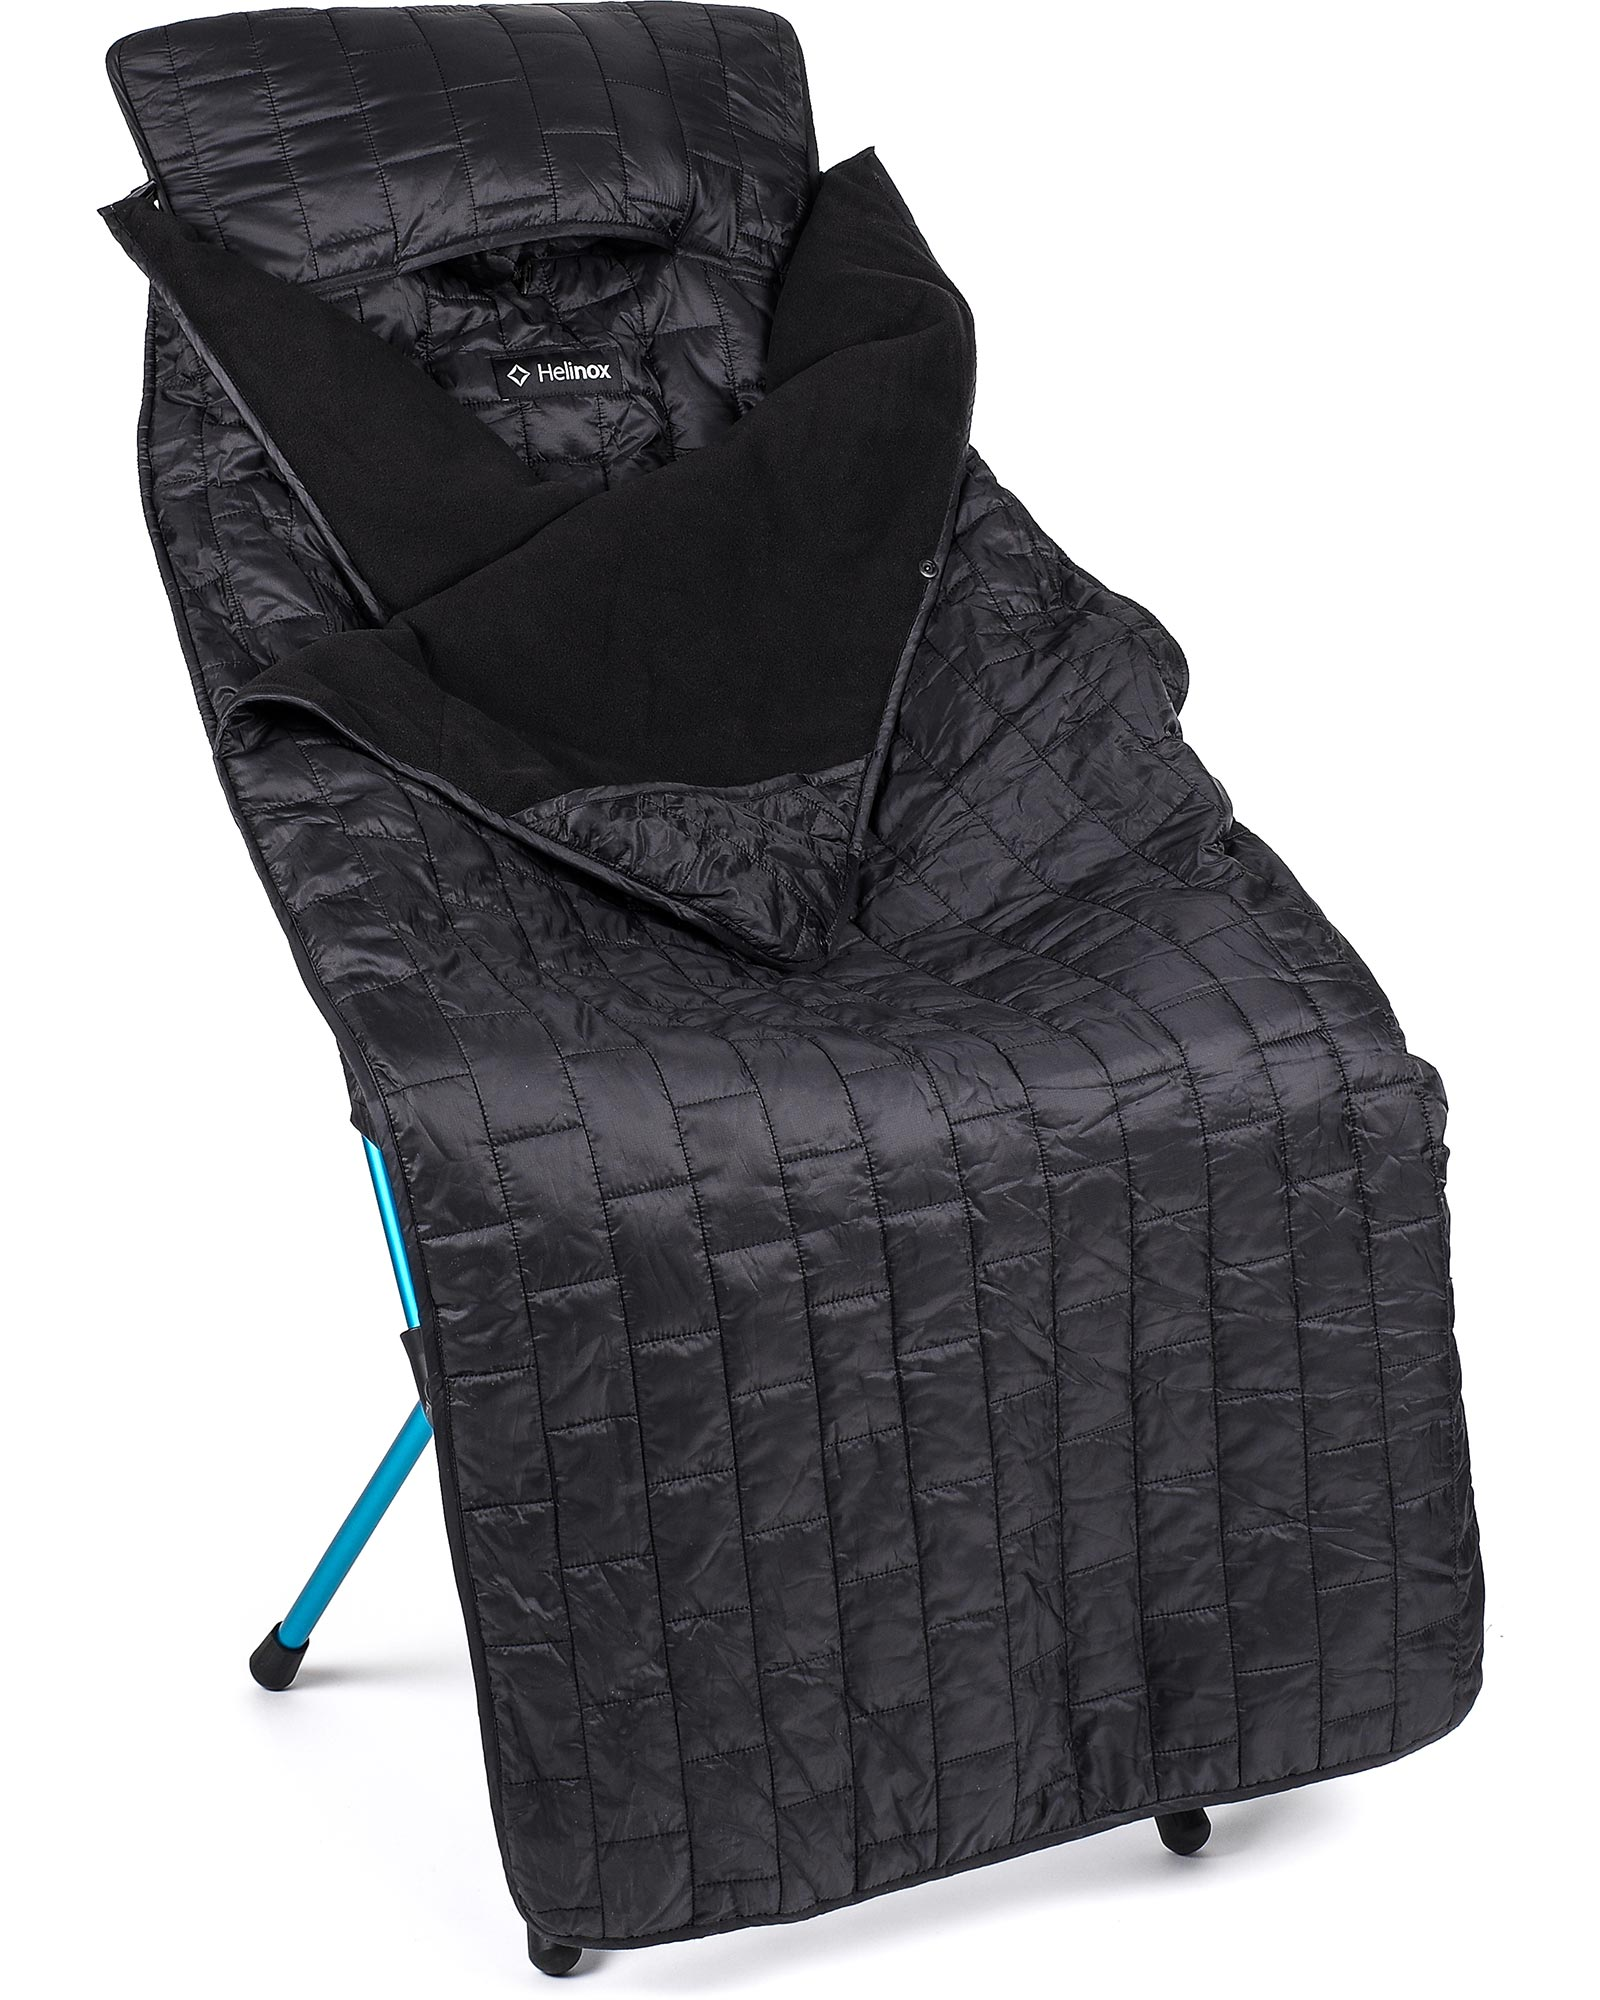 Camping & Trekking Helinox Toasty for Sunset Chair